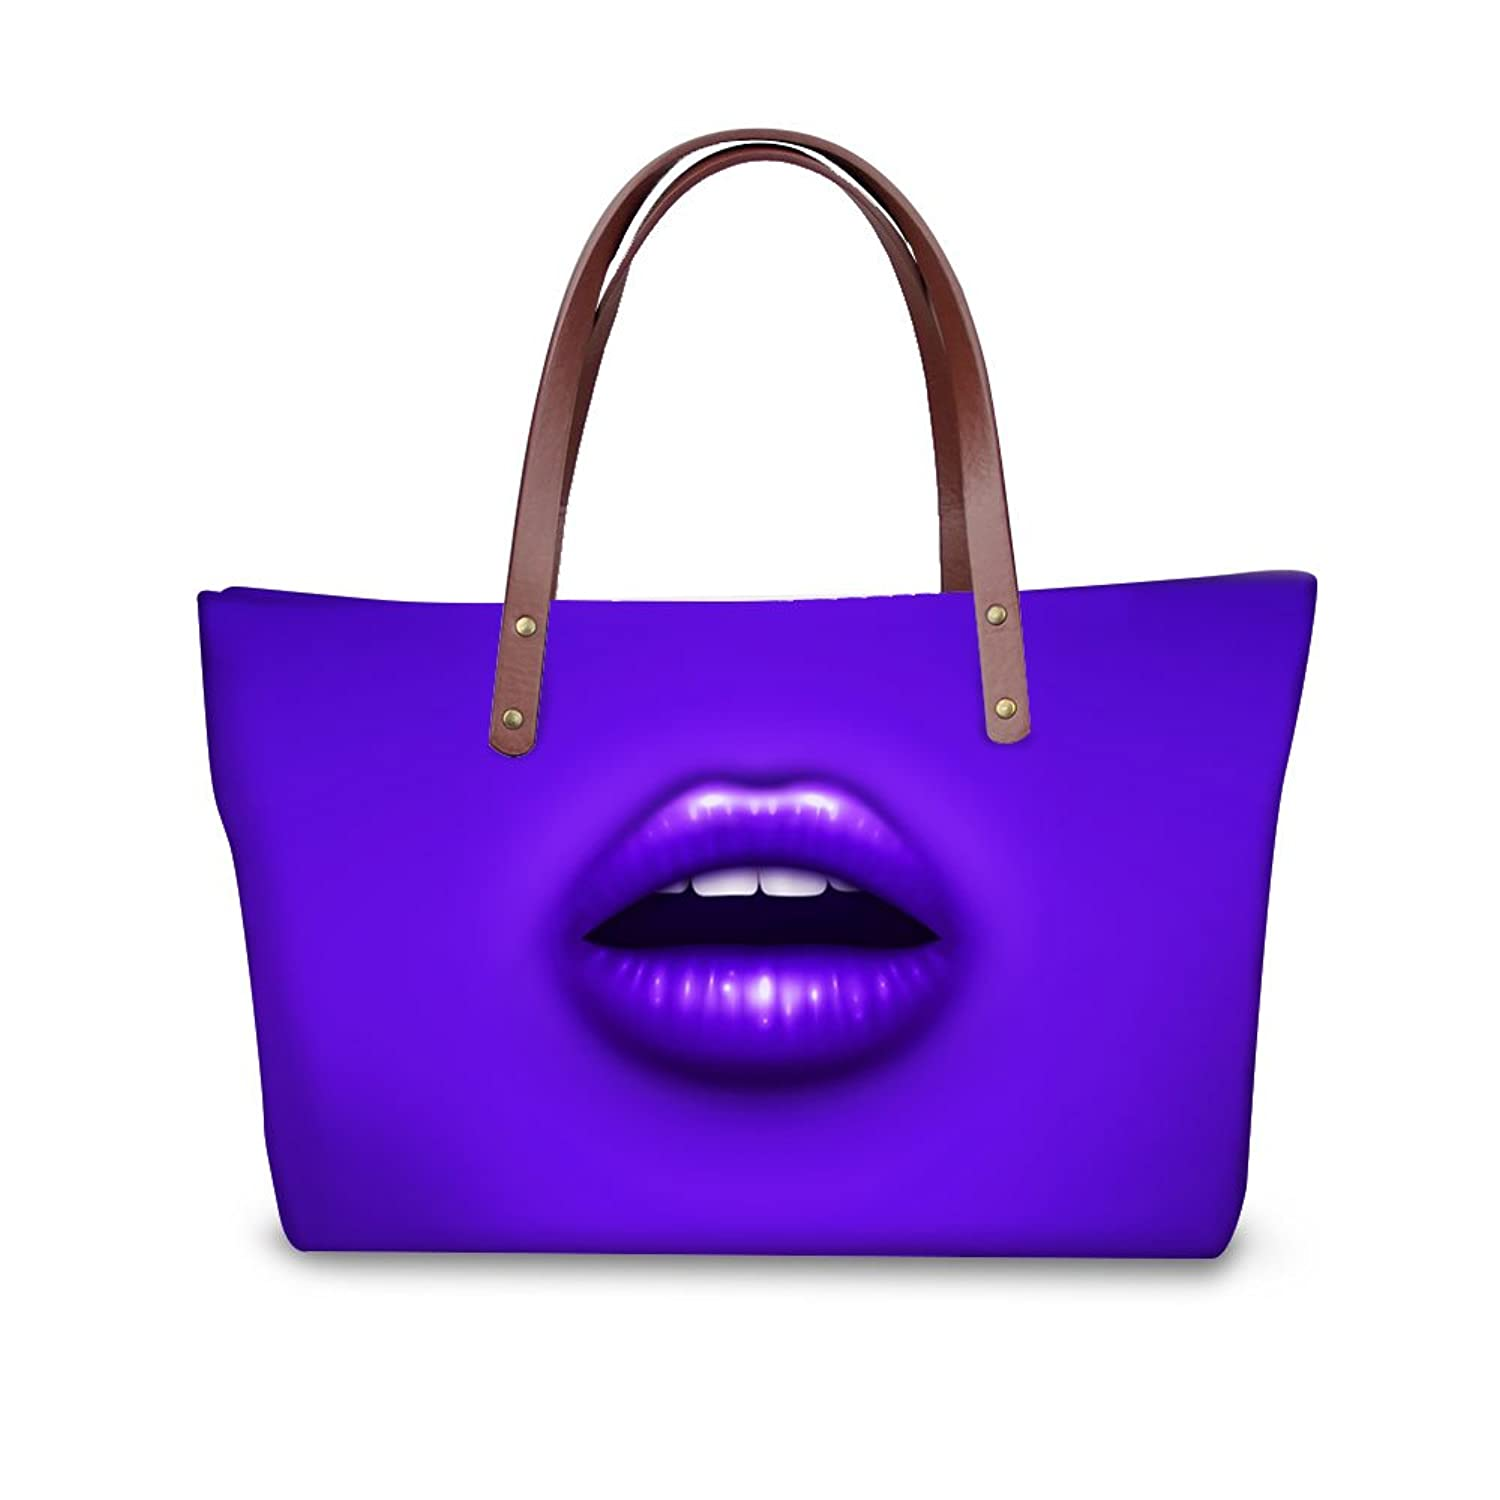 FOR U DESIGNS Fashion Water Resistant Sexy Lip Women Casual Handbag Neoprene Shoulder Bags Tote Bags